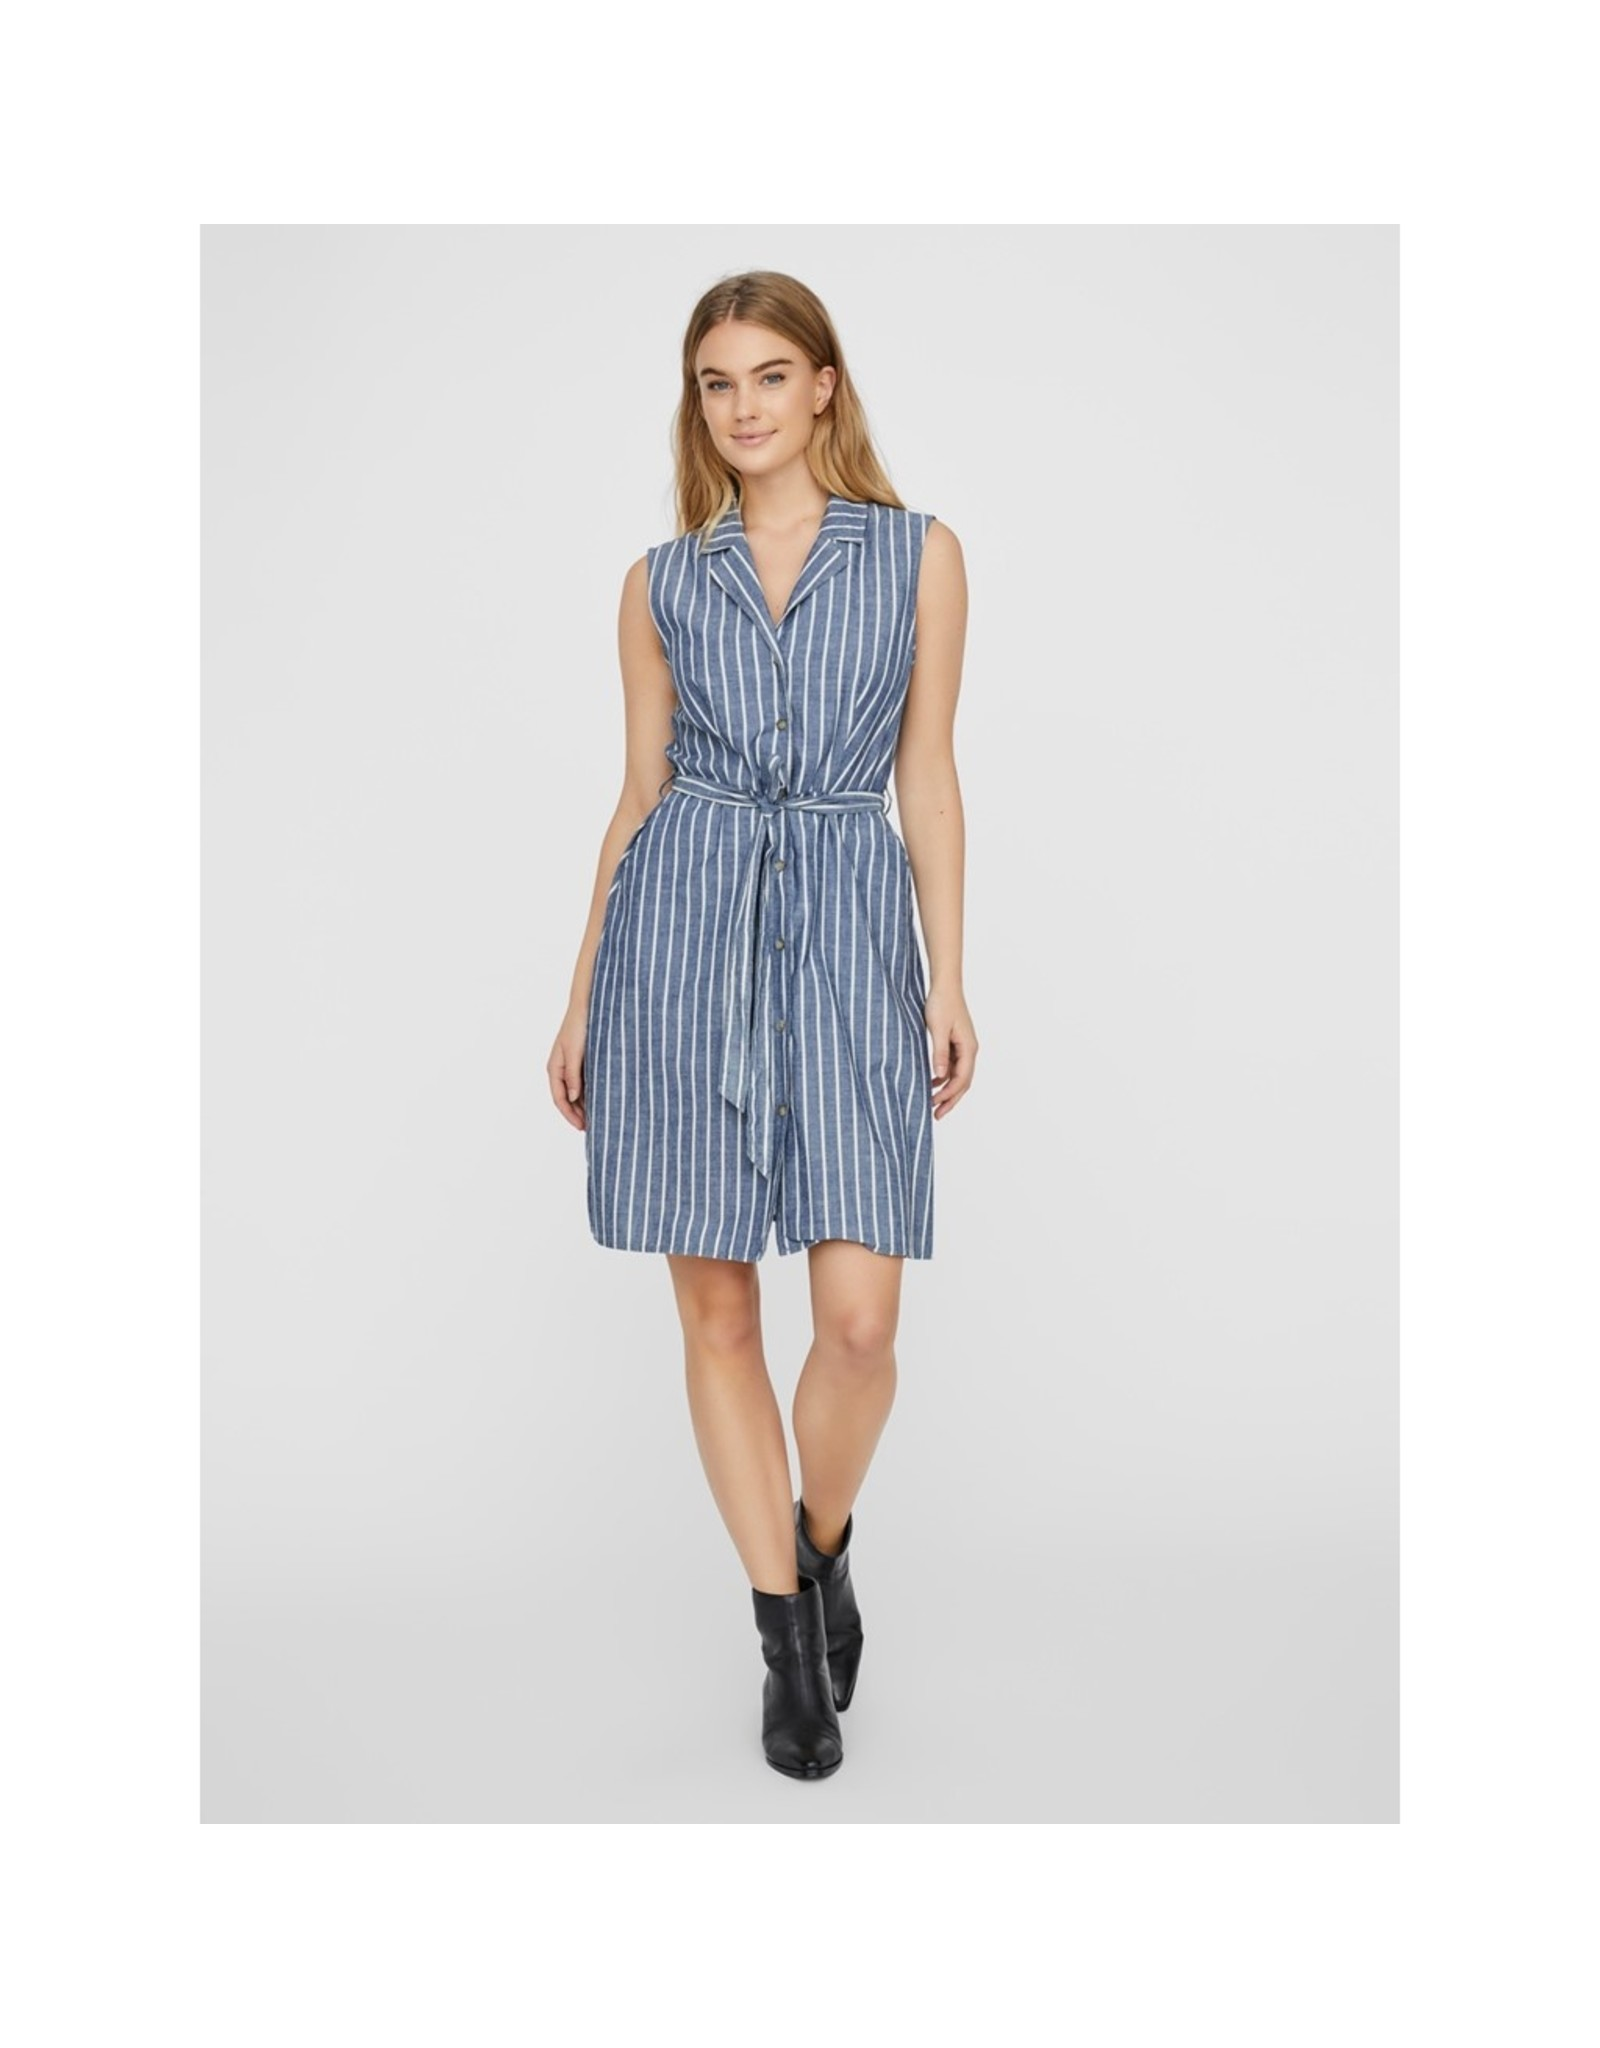 Vero Moda Vero Moda Sandy Dress